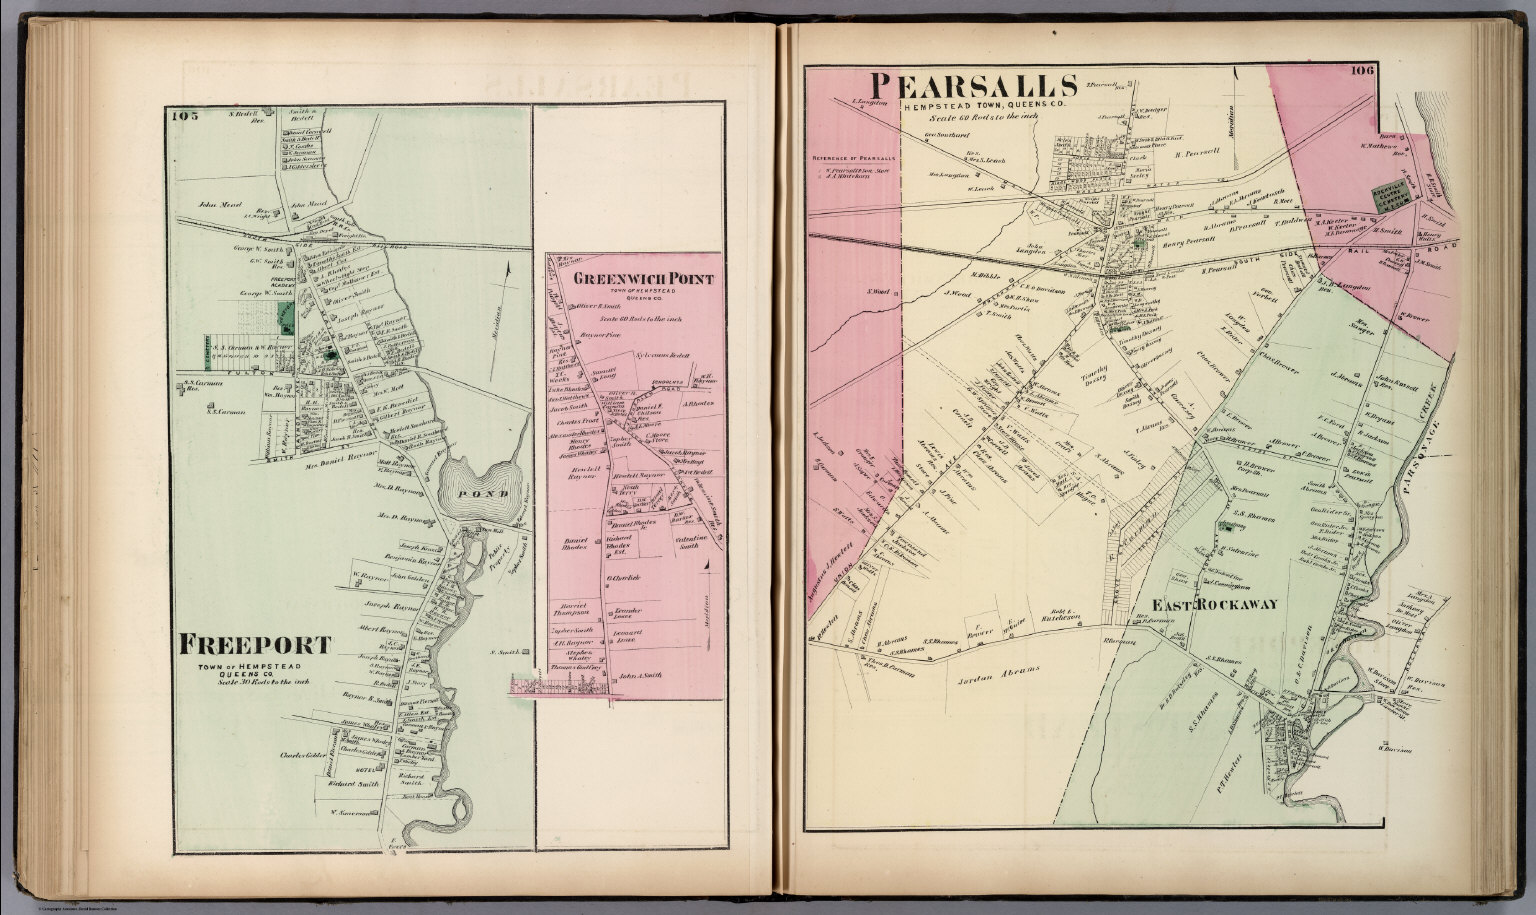 Freeport, Town of Hempstead, Queens Co. Greenwich Point, Town ofhempstead town